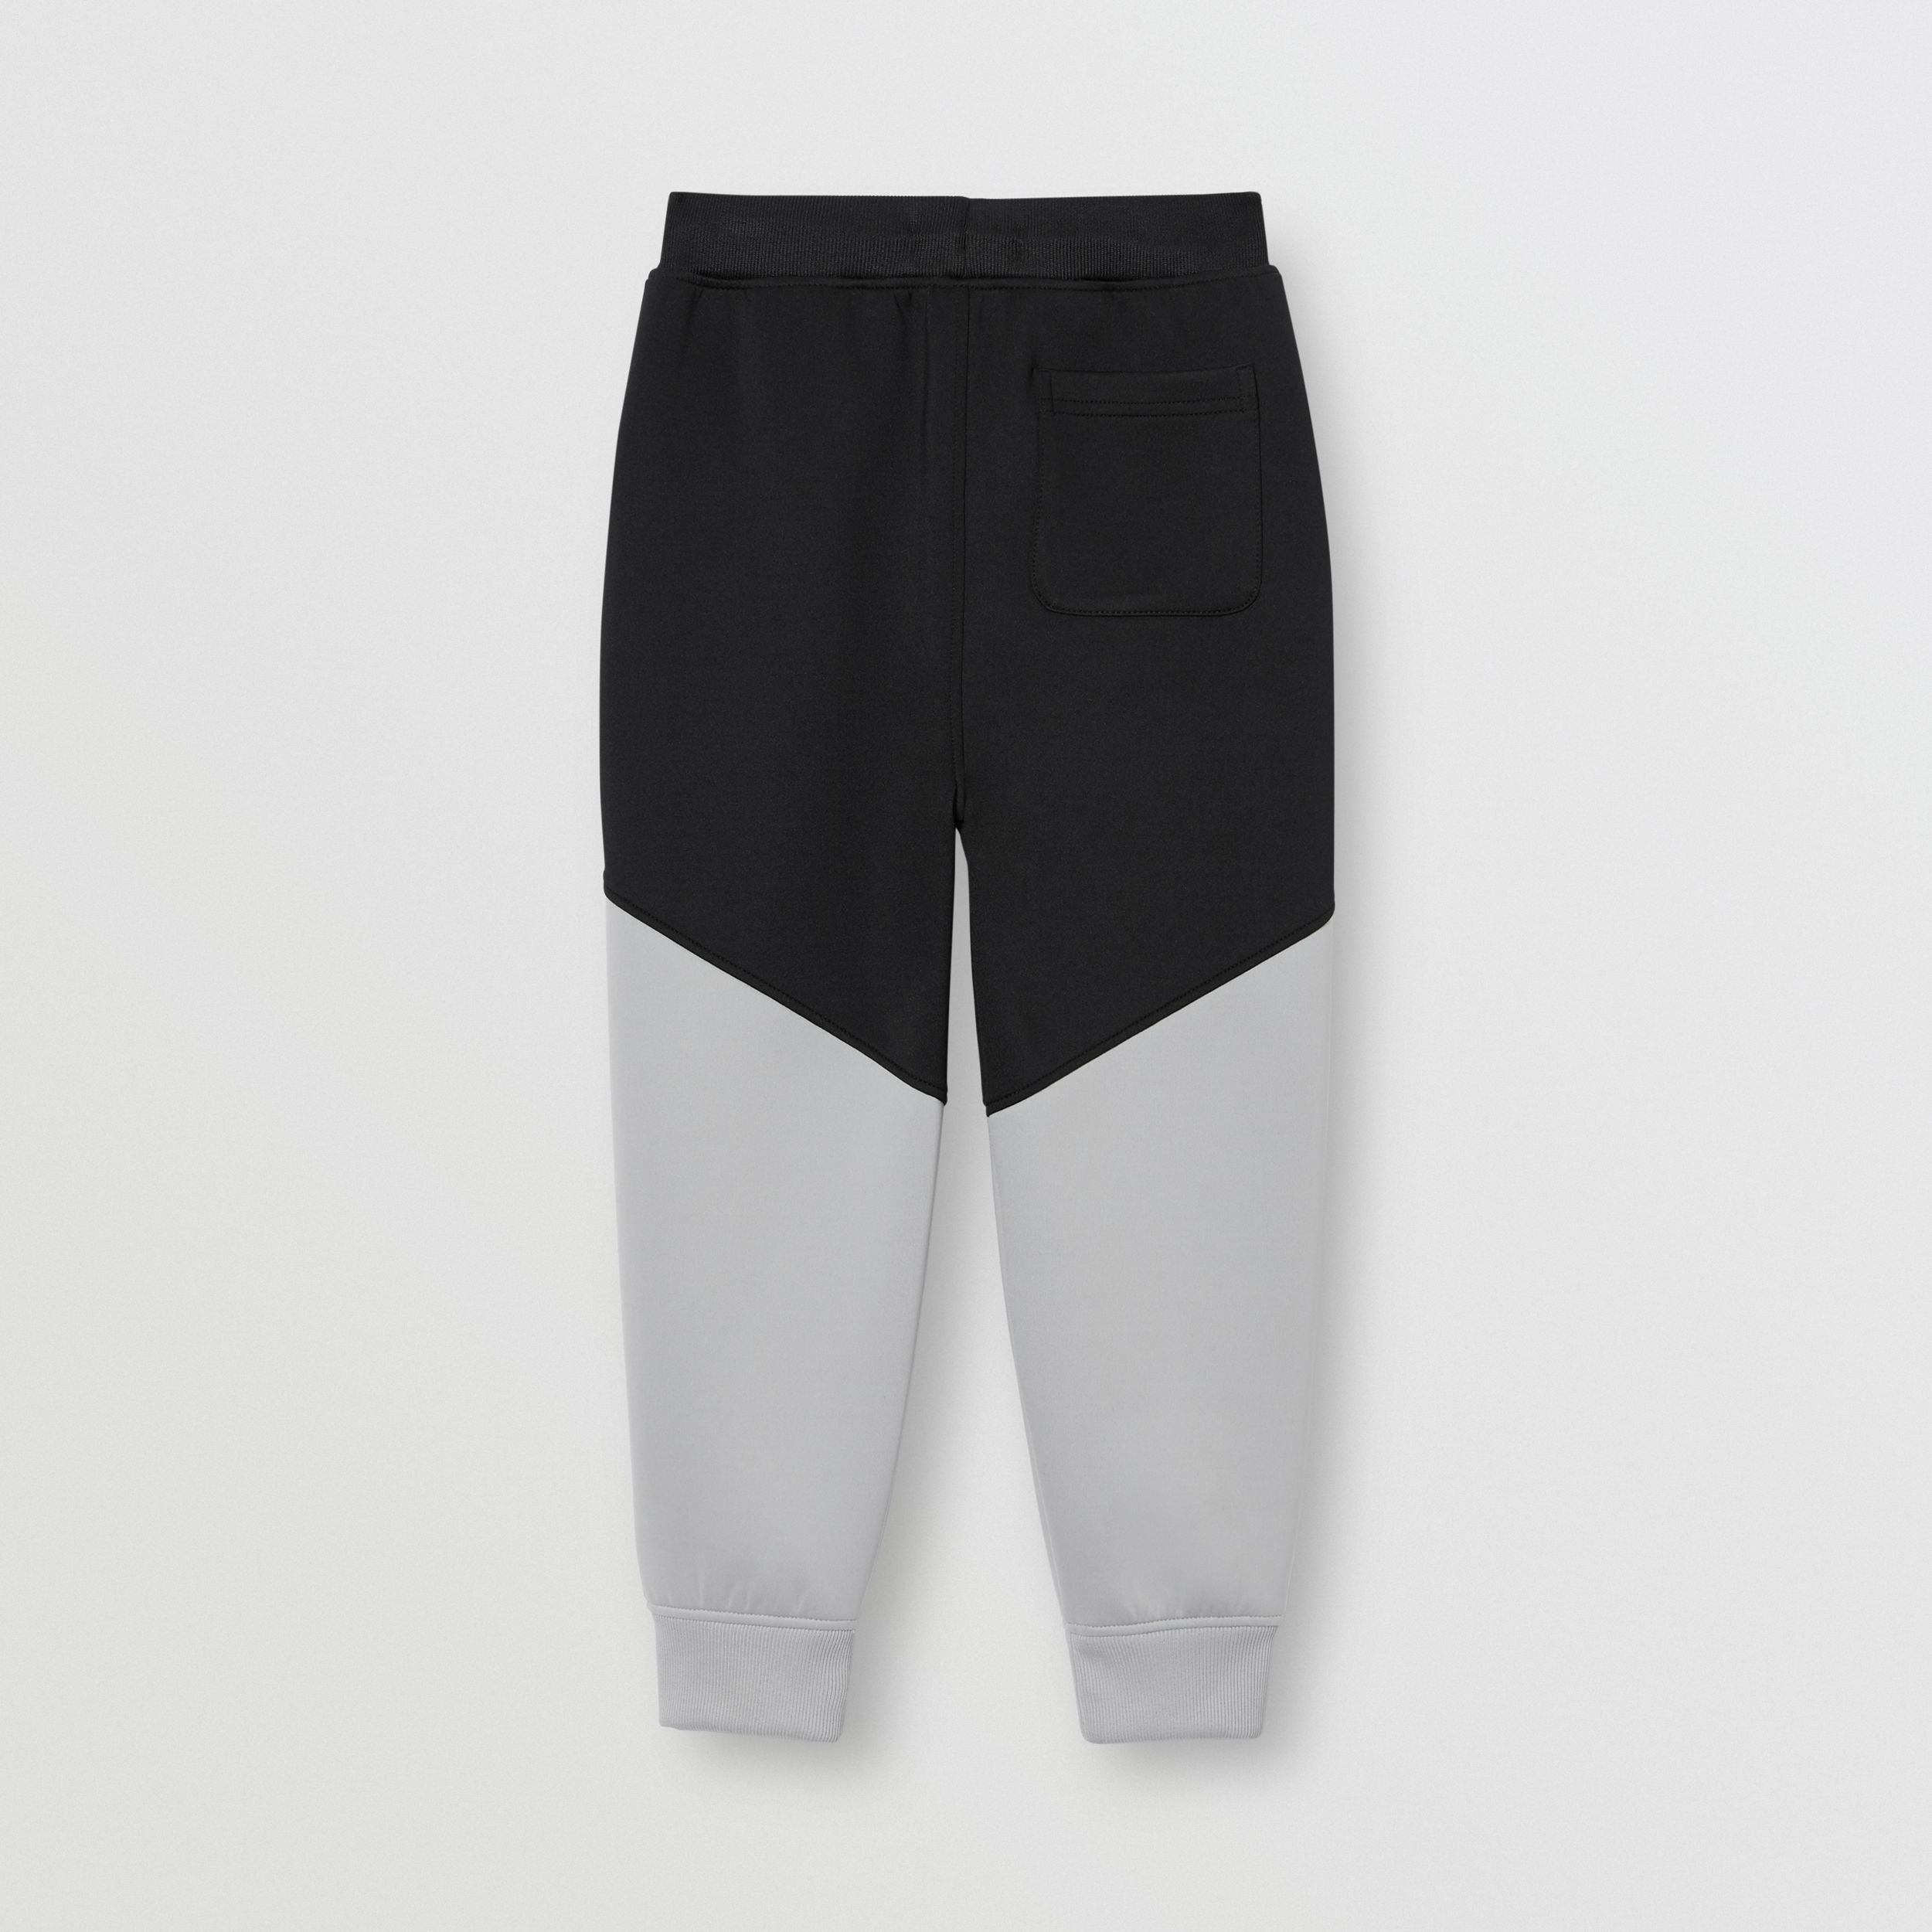 Logo Print Two-tone Stretch Jersey Trackpants in Black | Burberry - 4